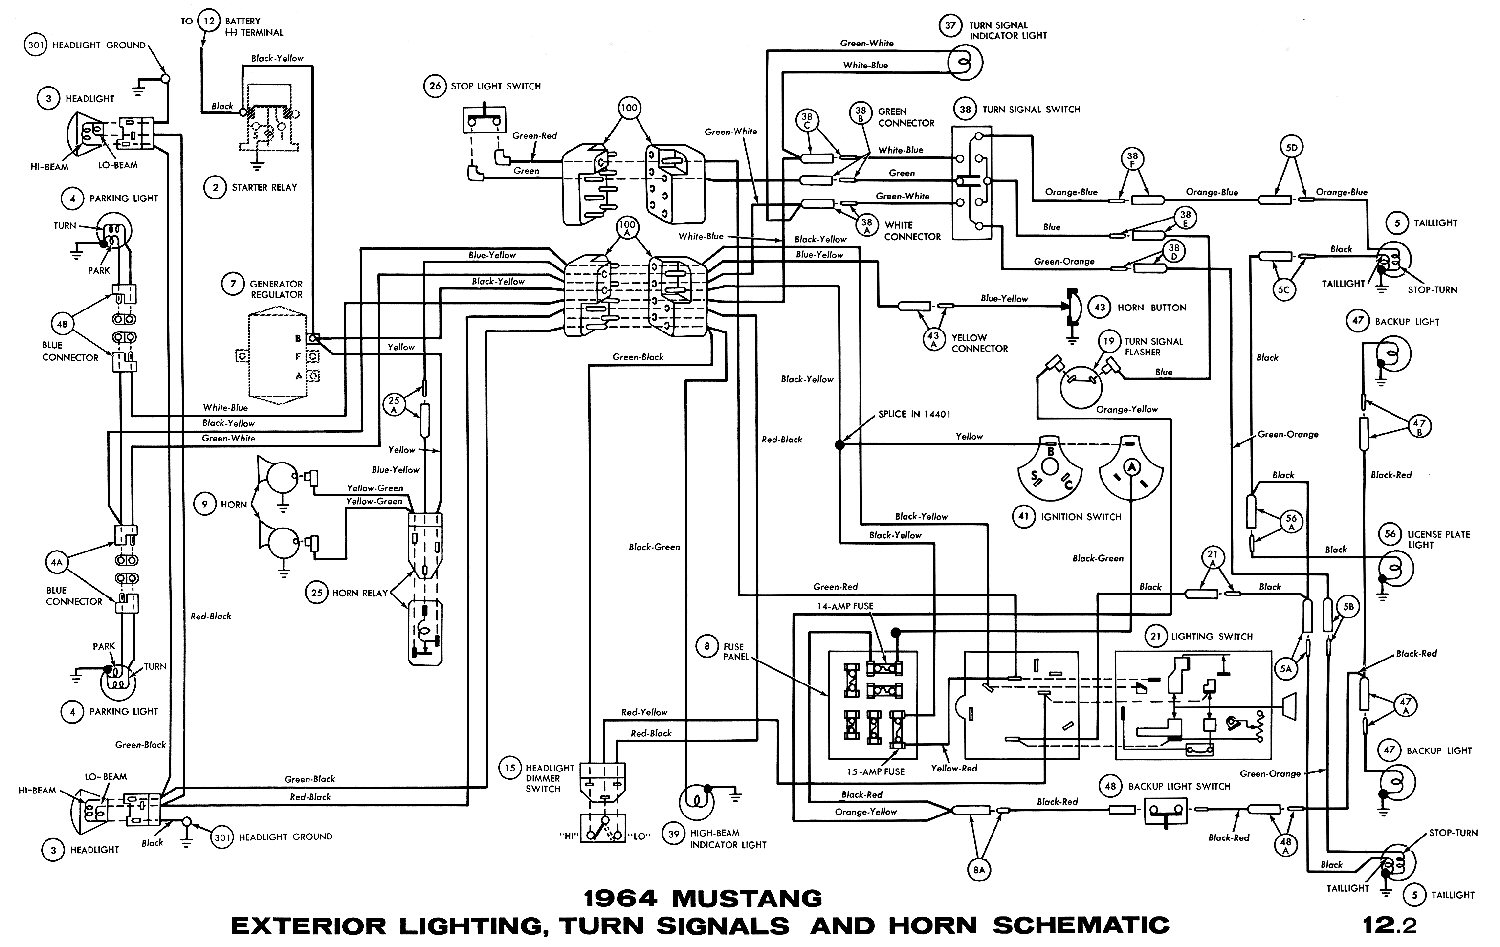 1964i 1964 mustang wiring diagrams average joe restoration 1969 mustang steering column wiring diagram at cos-gaming.co